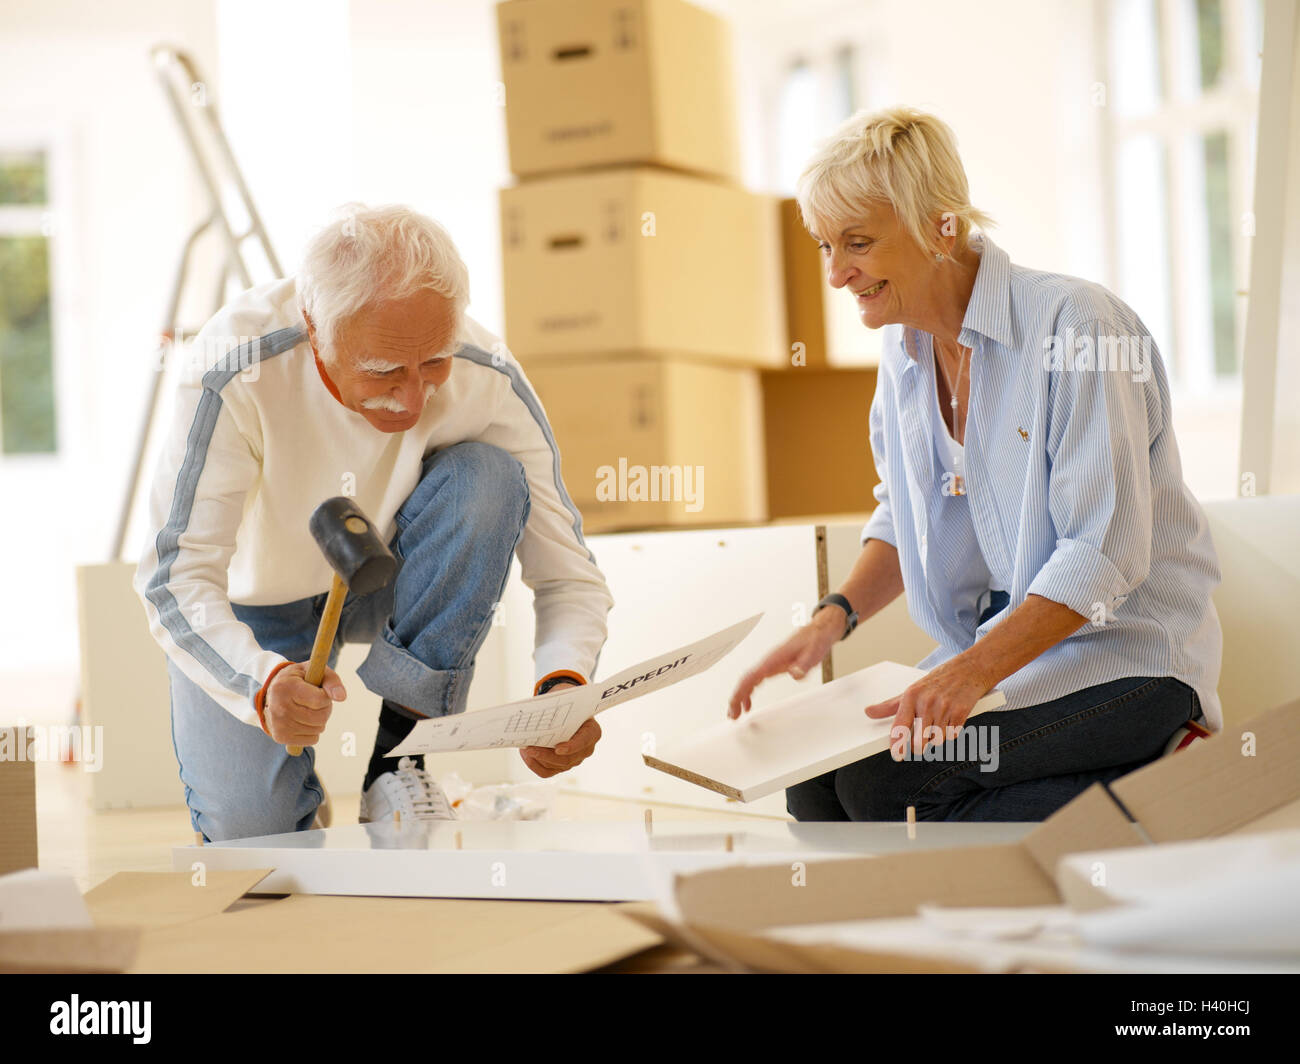 Procession, Senior couple, St. furniture, assemble, concentration, 60-70 years, senior citizens, couple, flat change, - Stock Image